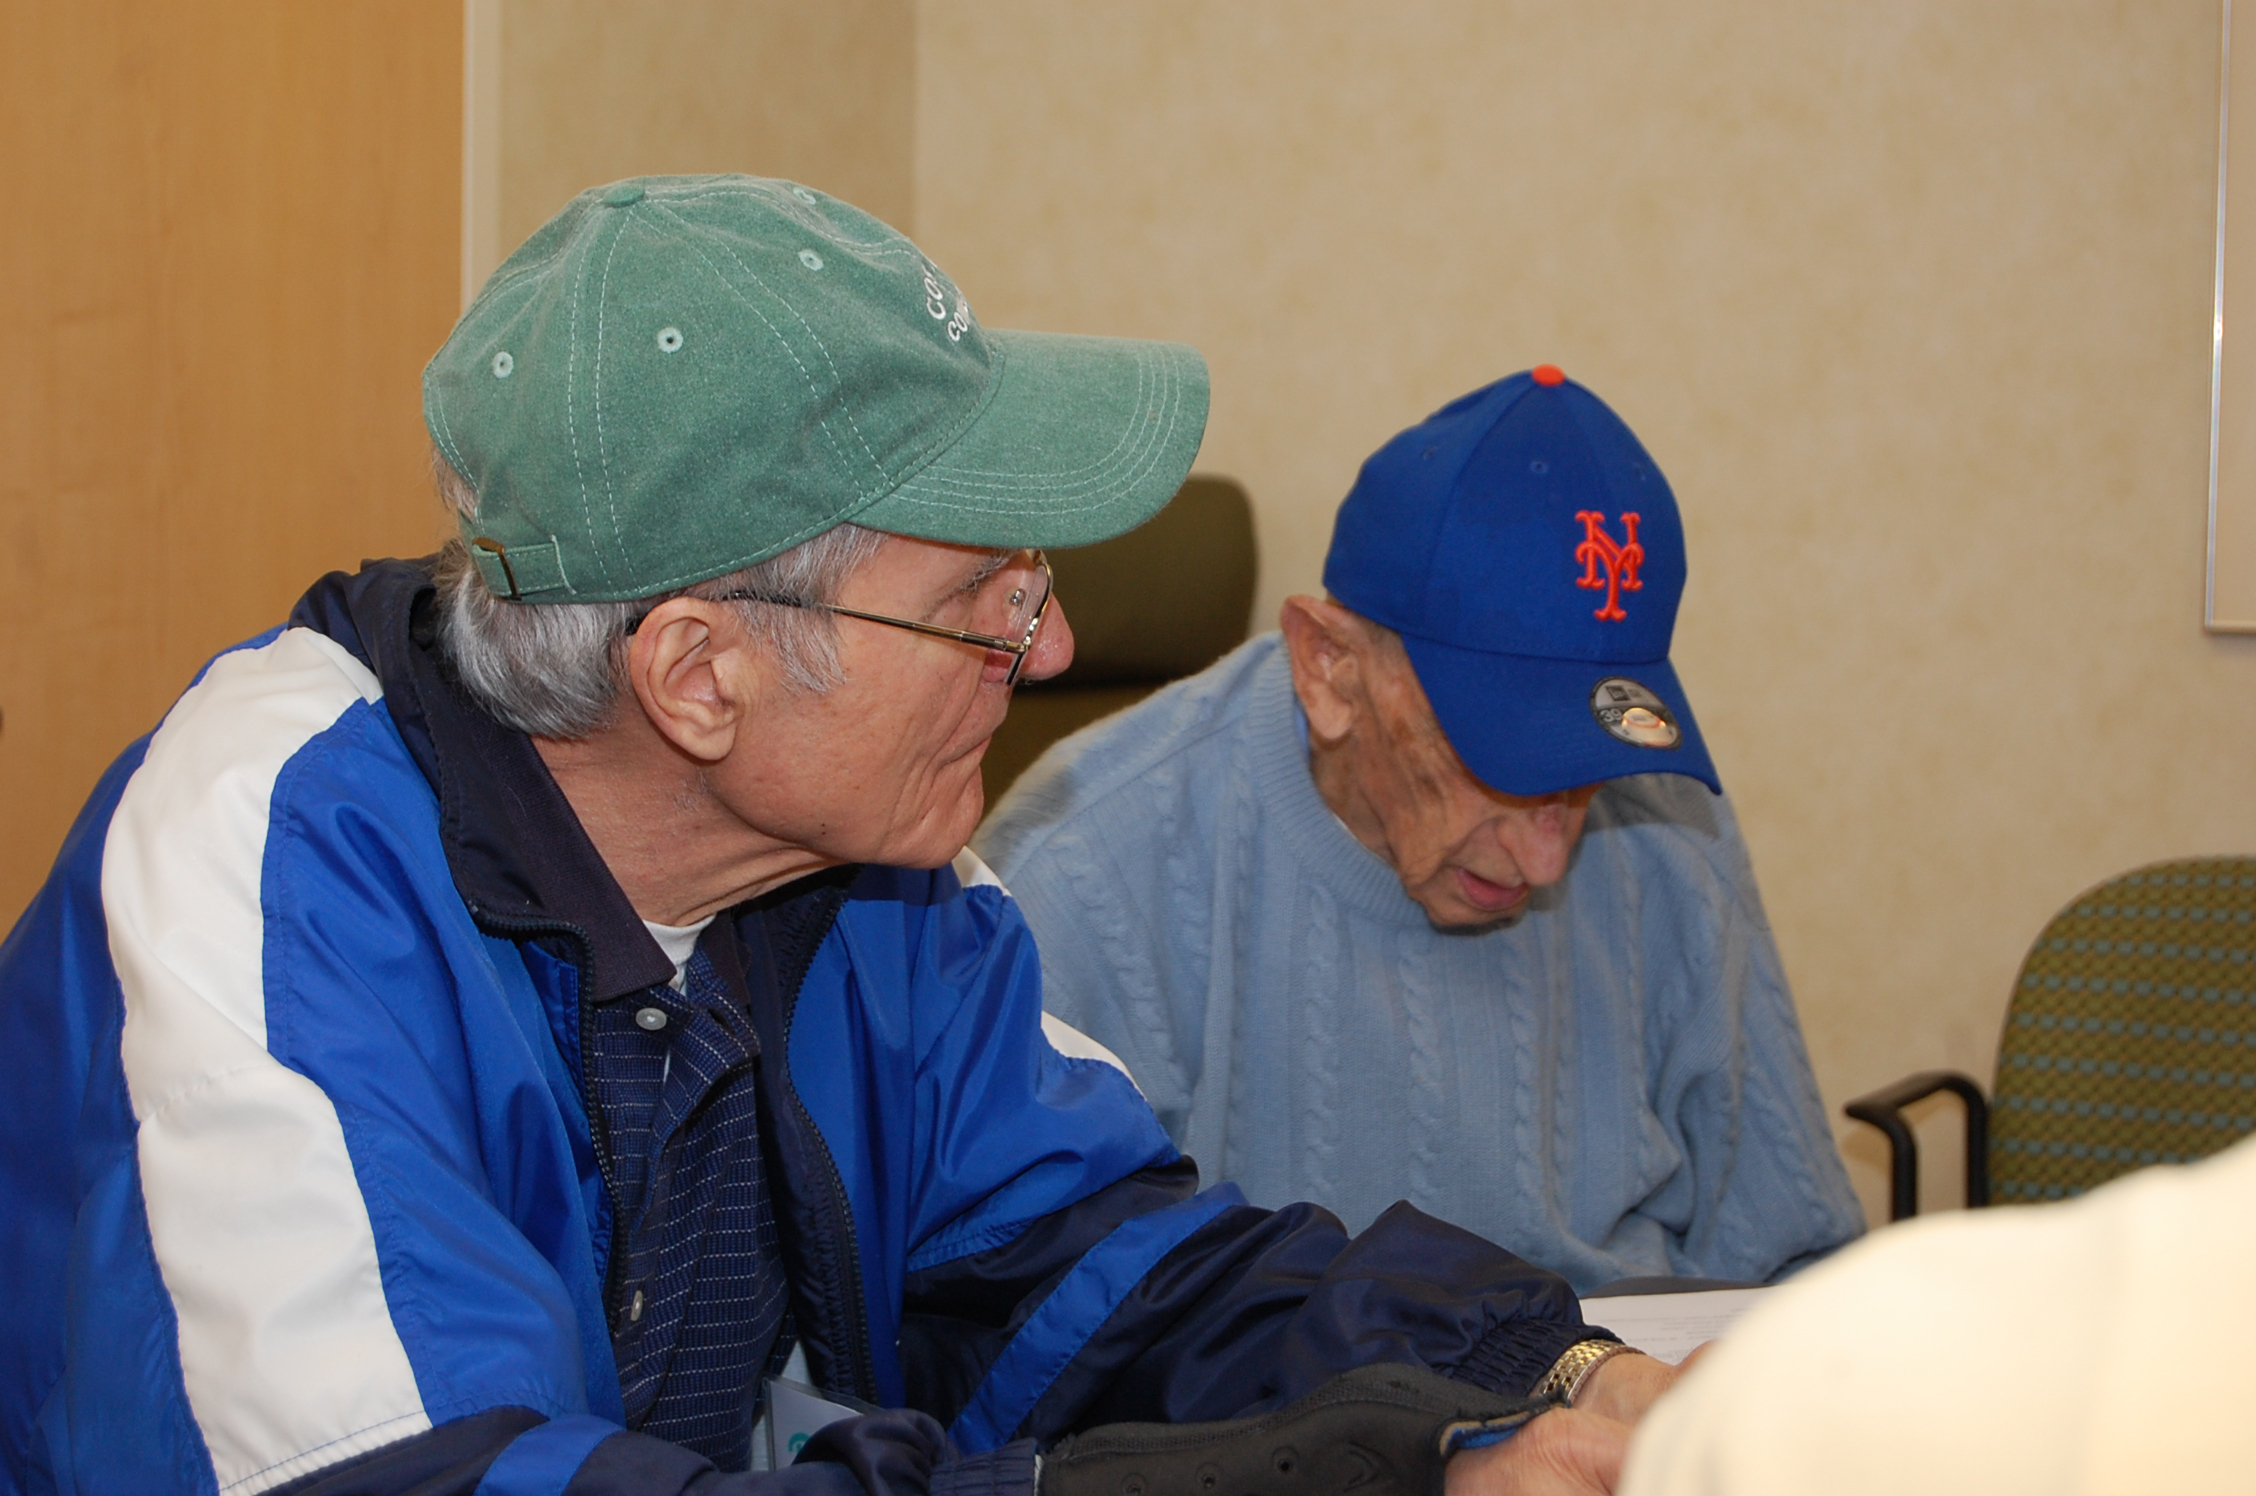 Two of the participants in the Baseball Reminiscence Program at River House Adult Care Center in Cos Cobb, Connecticut. (Kenneth Best/UConn Photo)